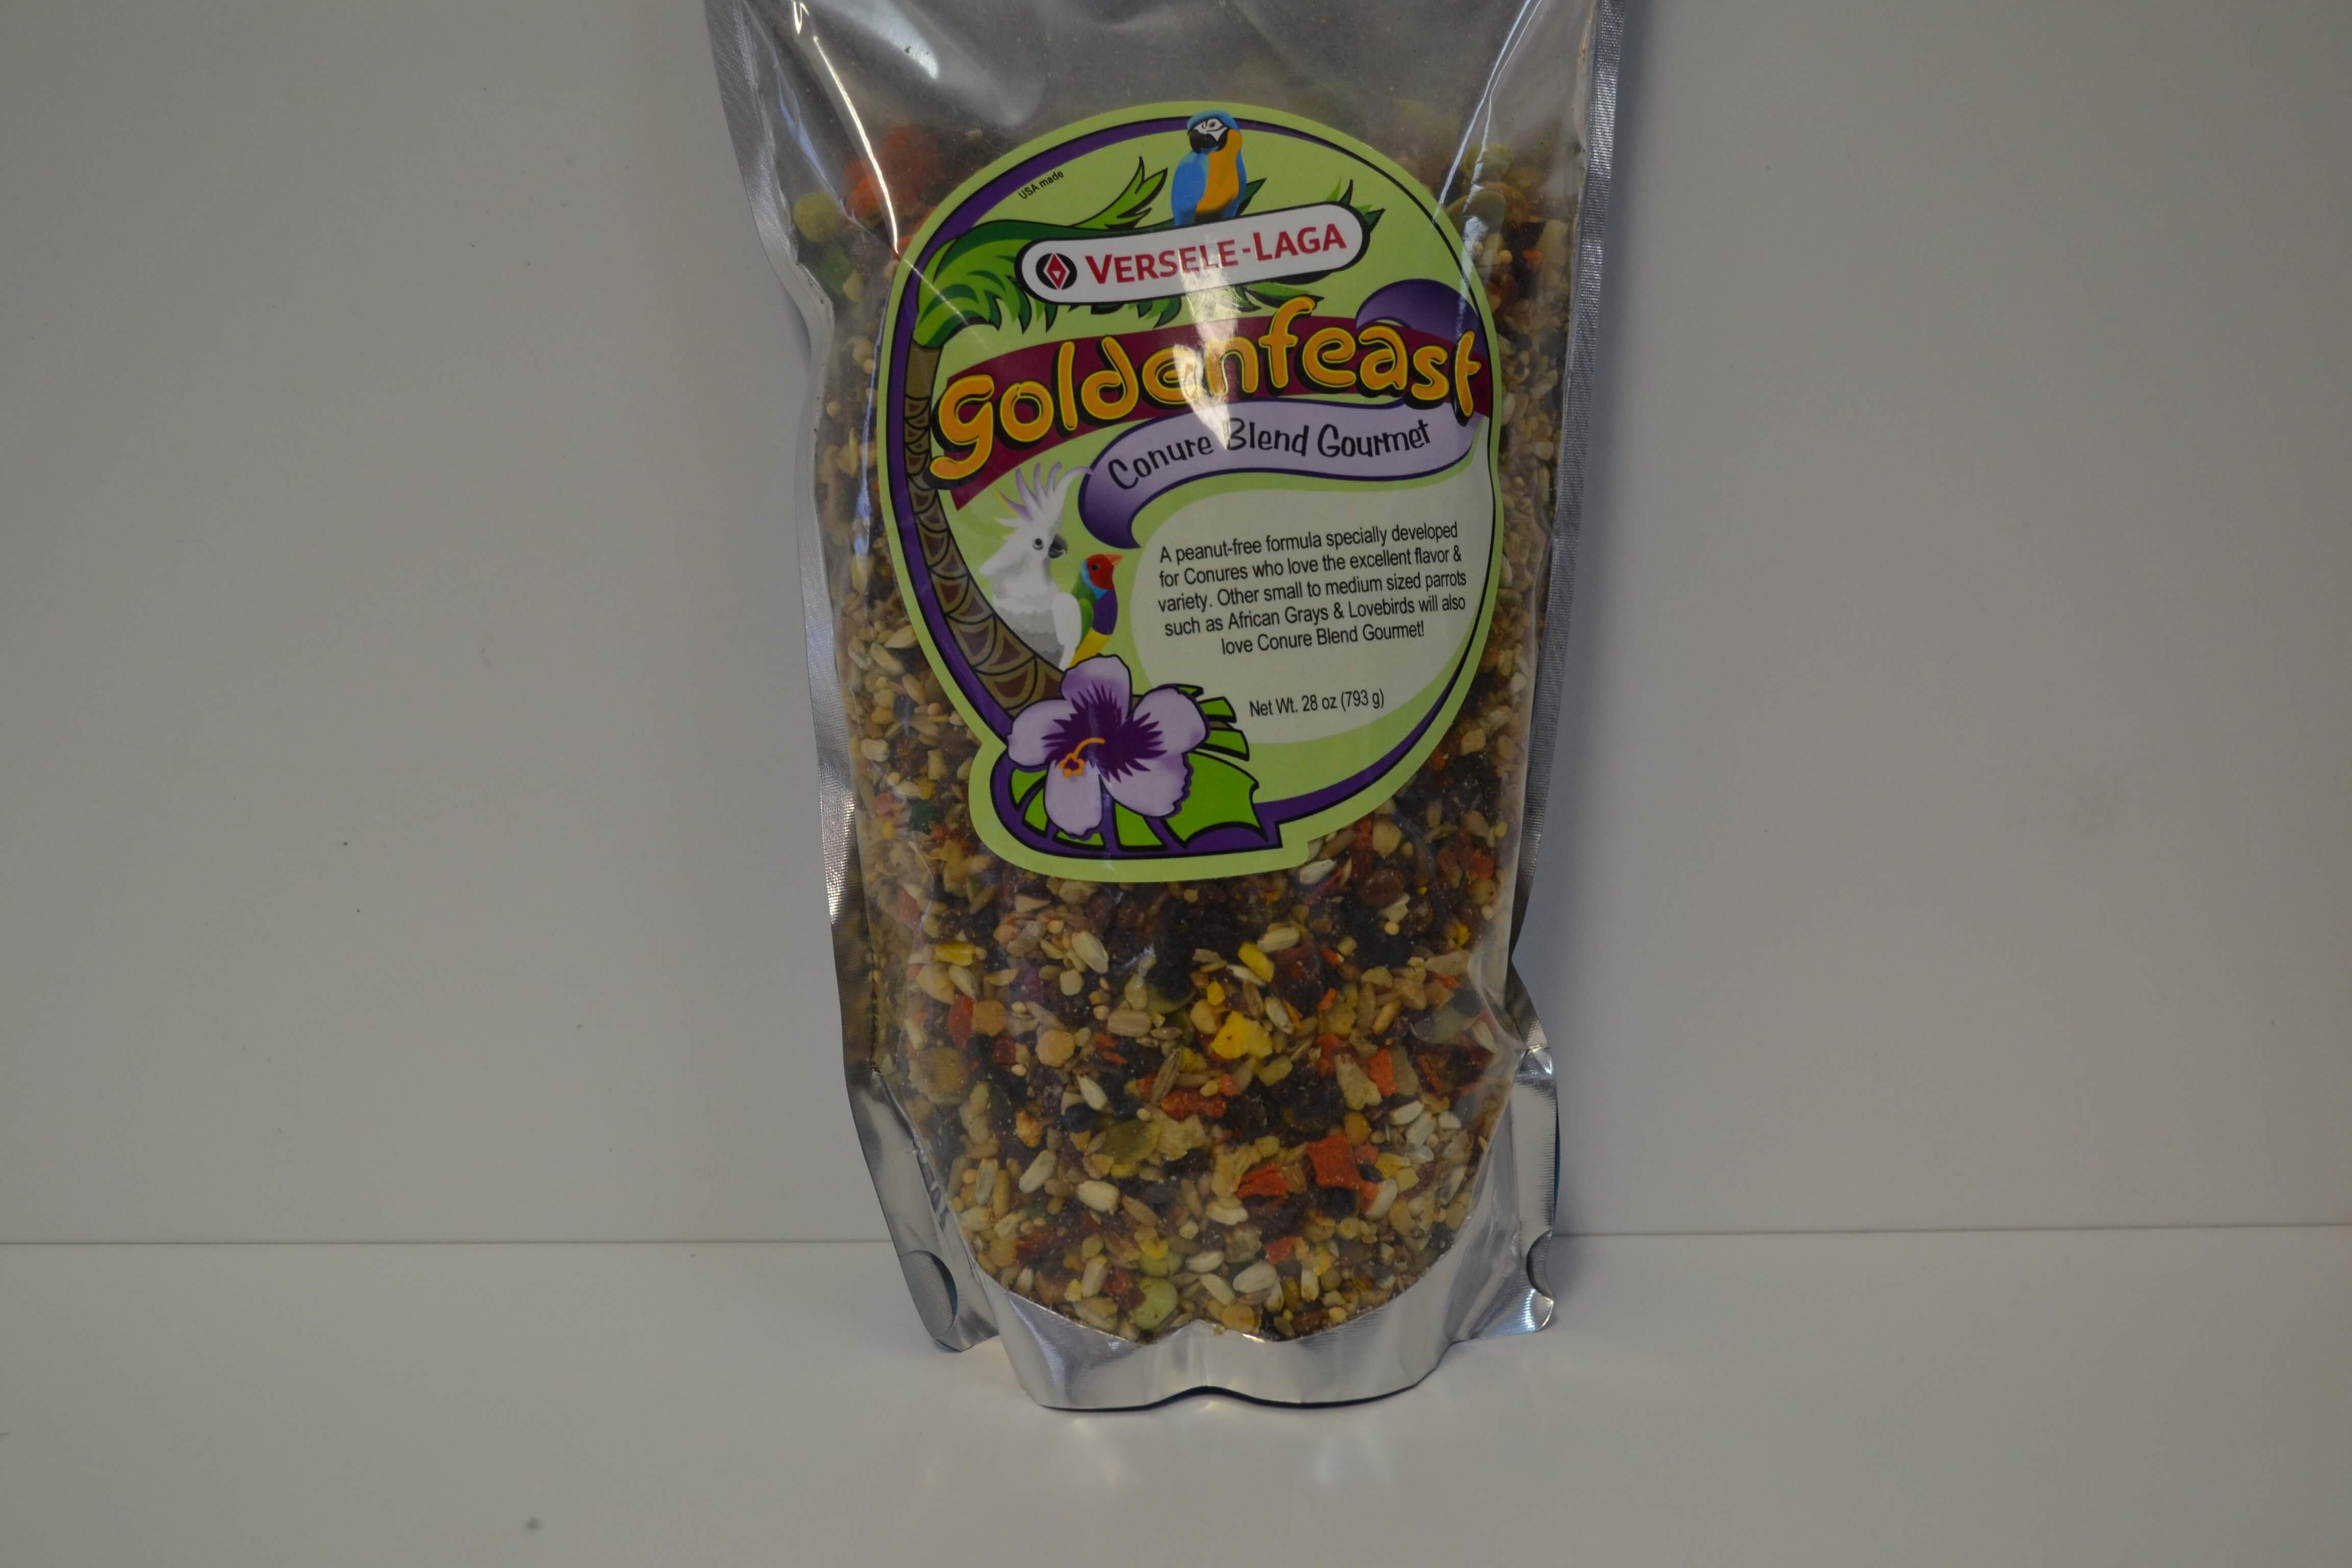 Goldenfeast Conure Blend Gourmet - Feathered Follies